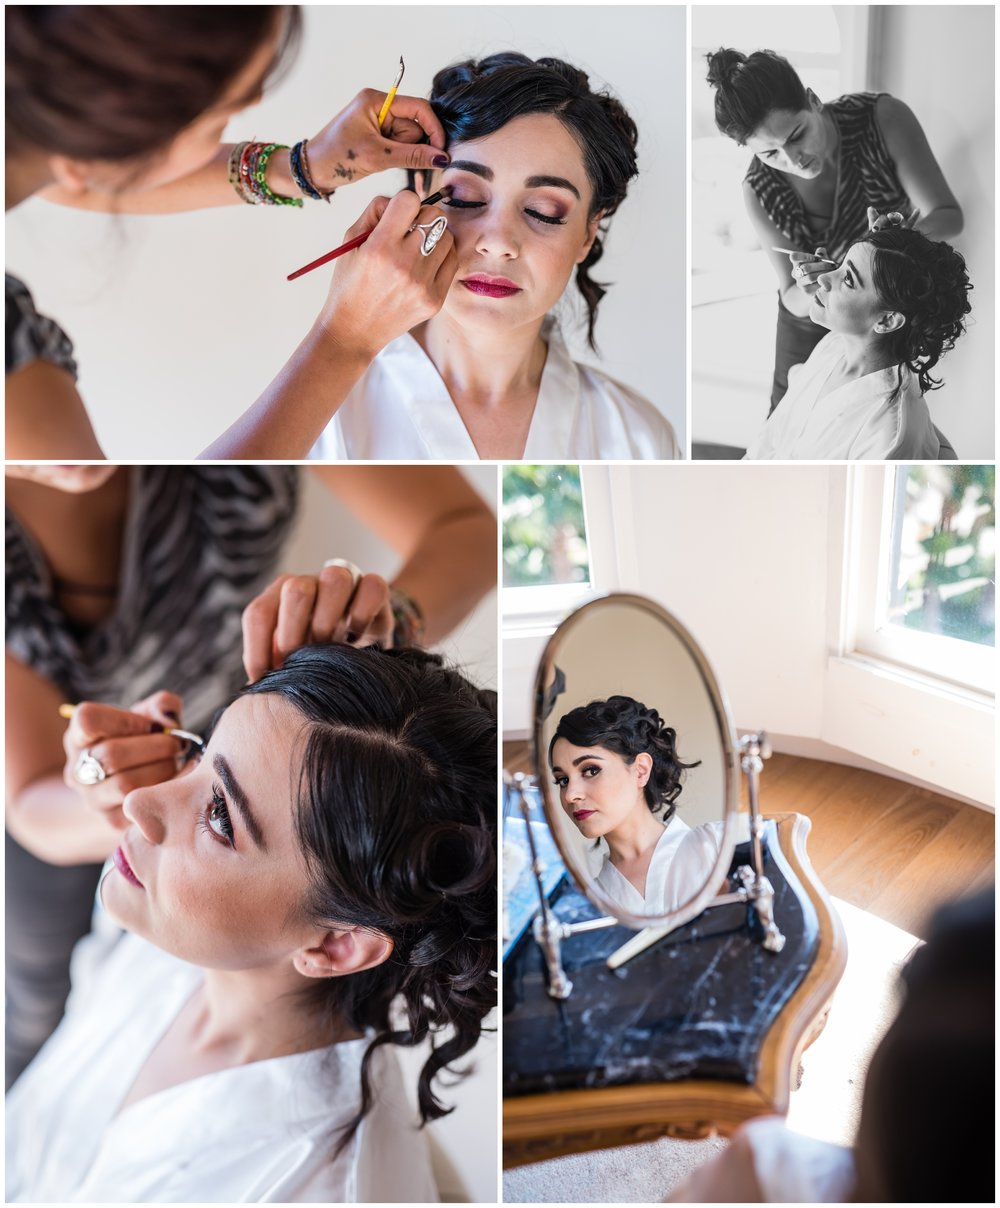 lunabellaphotos- new hall mansion-bride-make up